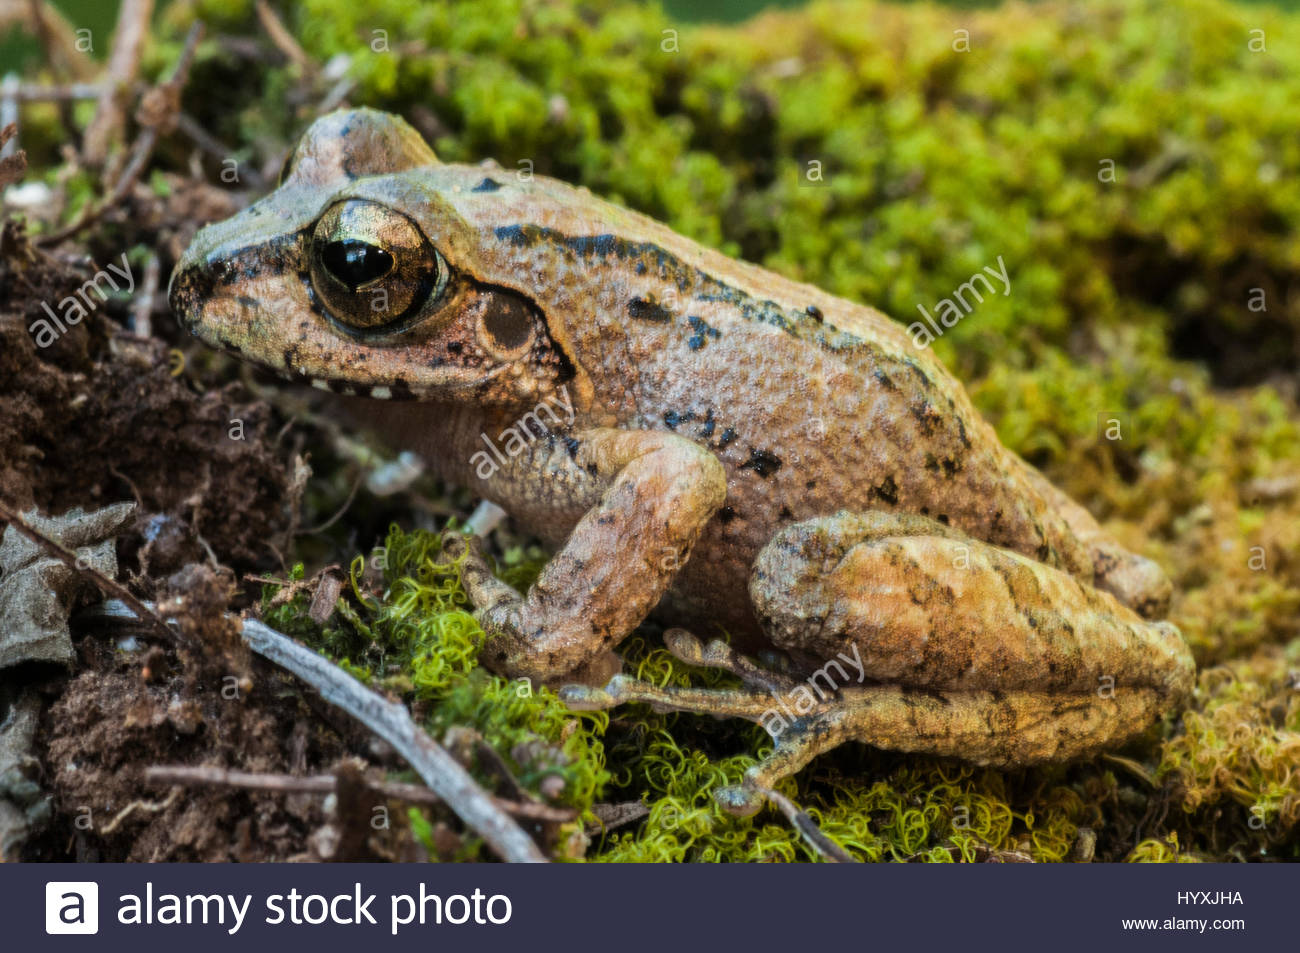 A bronzed frog, Hylarana temporalis, sits on the ground in Sinharaja Forest Reserve. - Stock Image